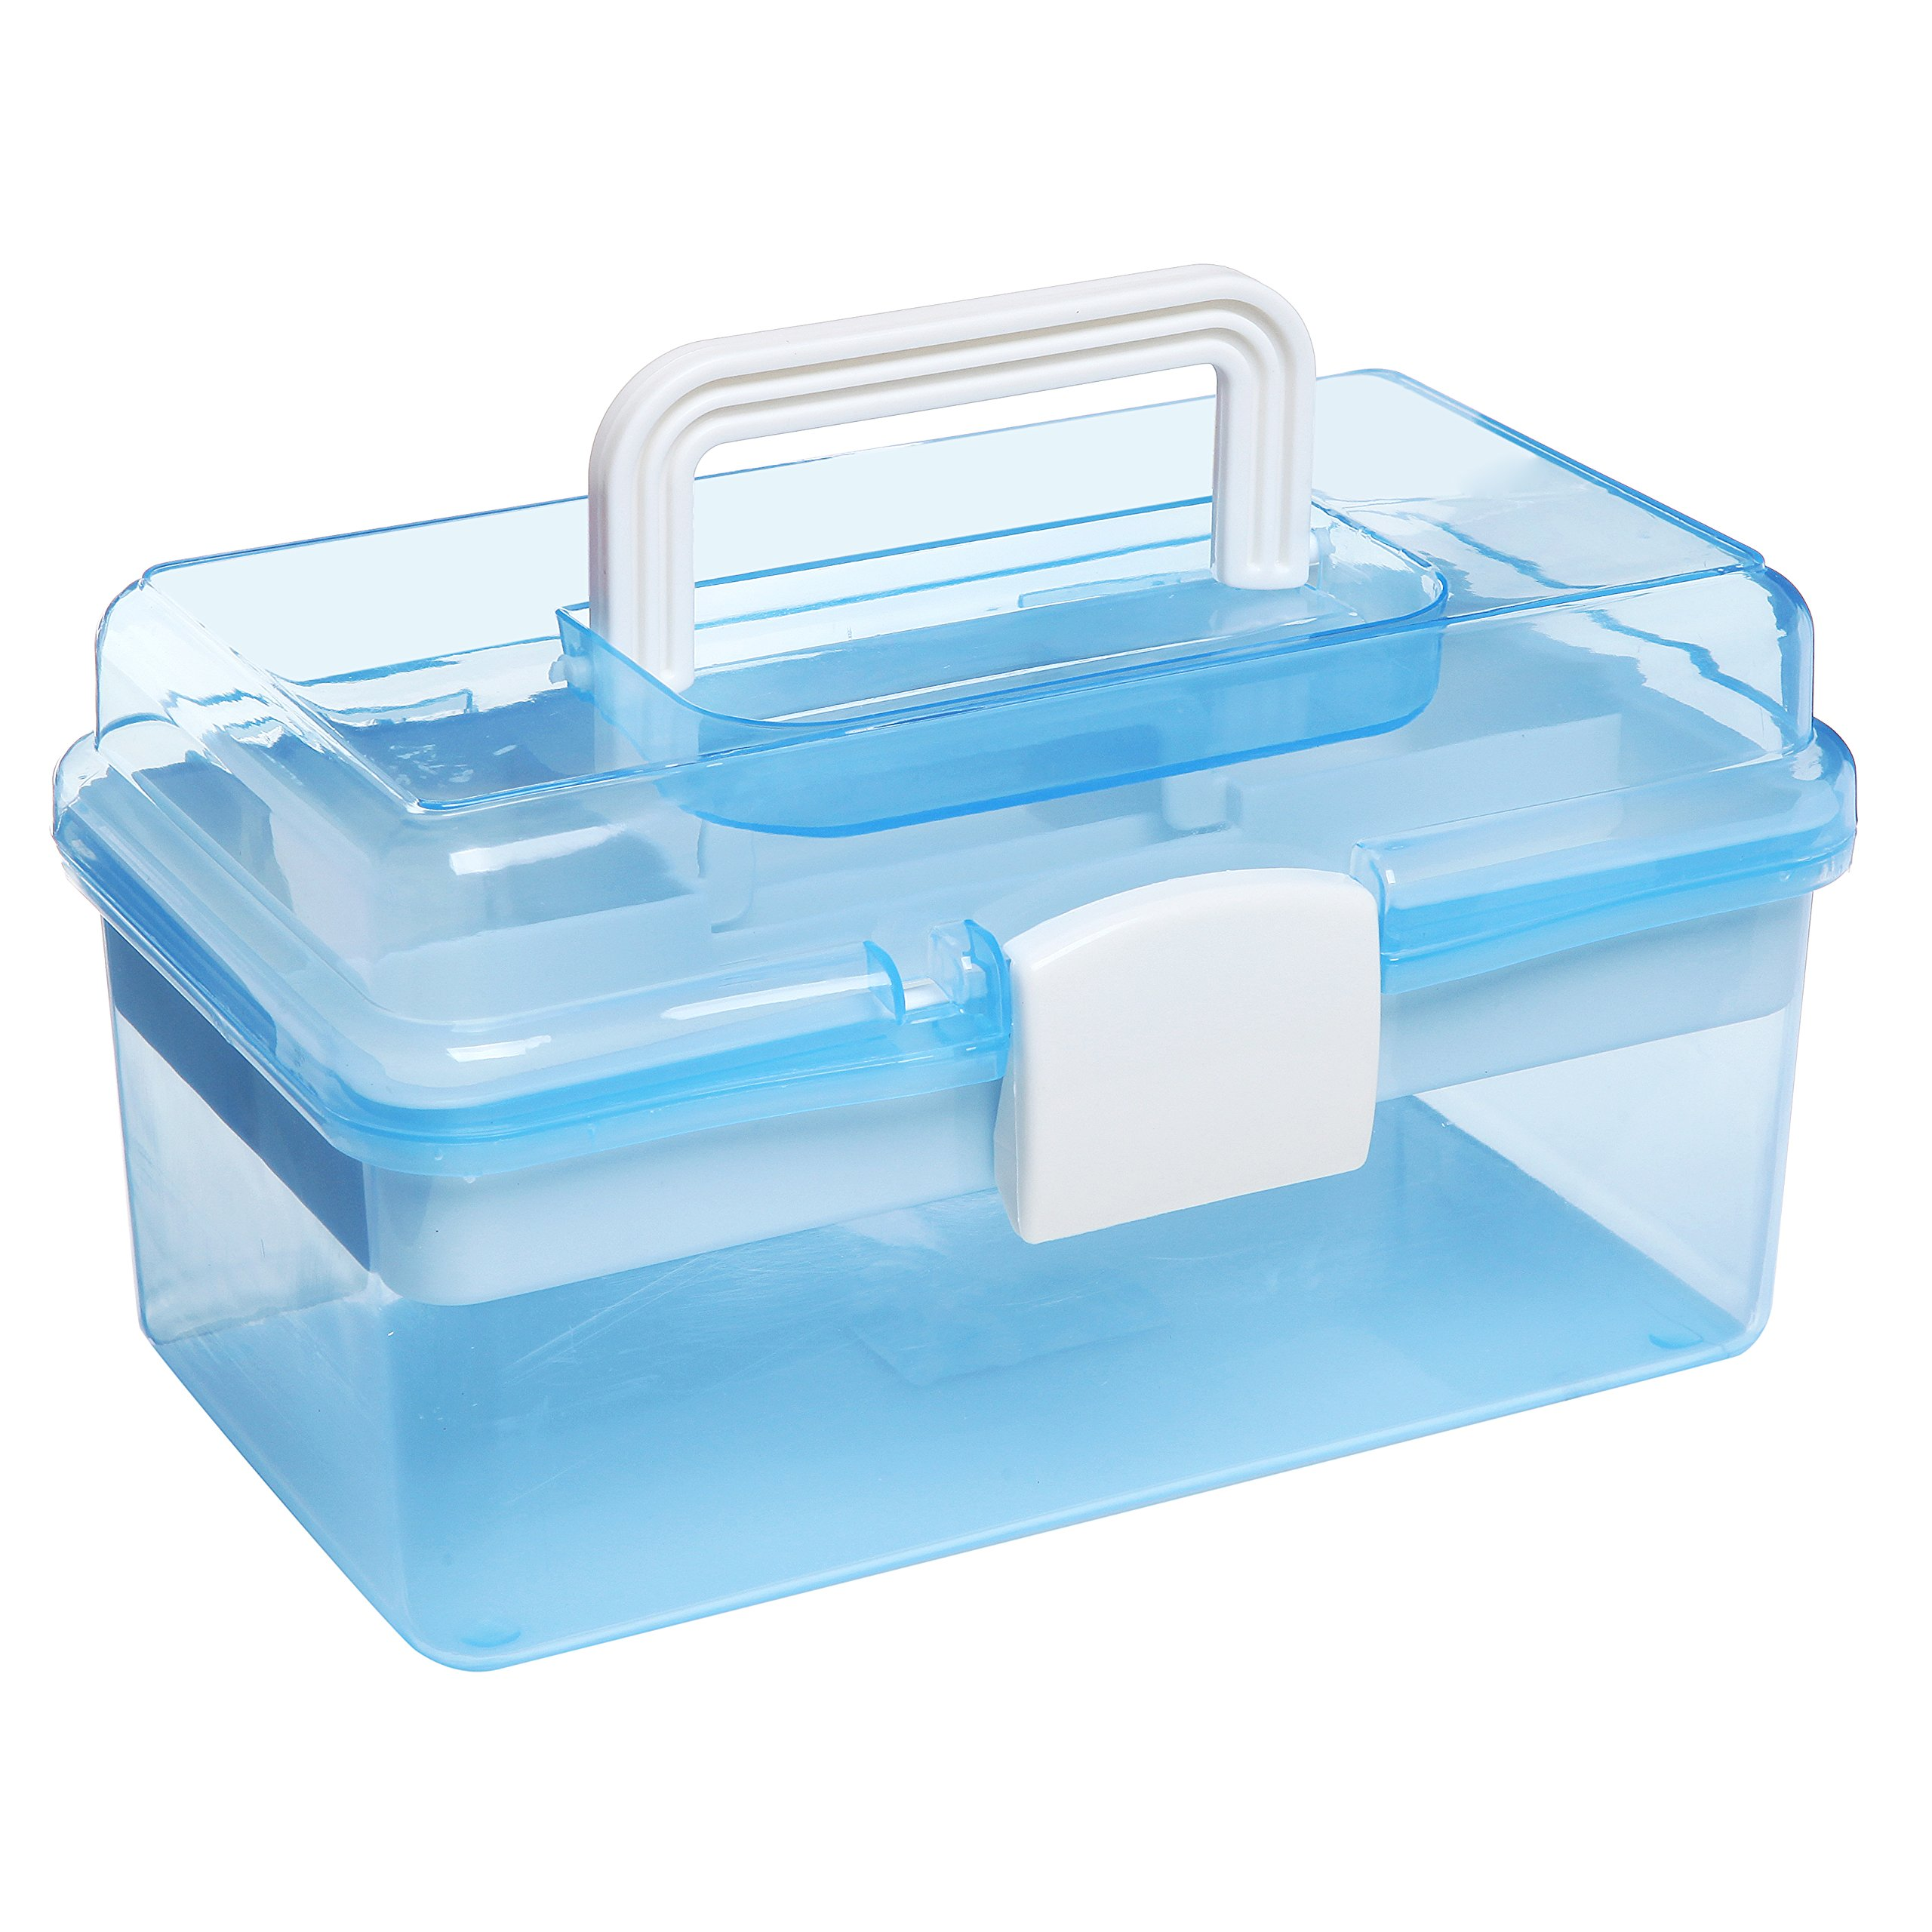 10'' Clear Light Blue Plastic Multipurpose Portable Handled Organizer Storage Box / Case w/ Removable Tray